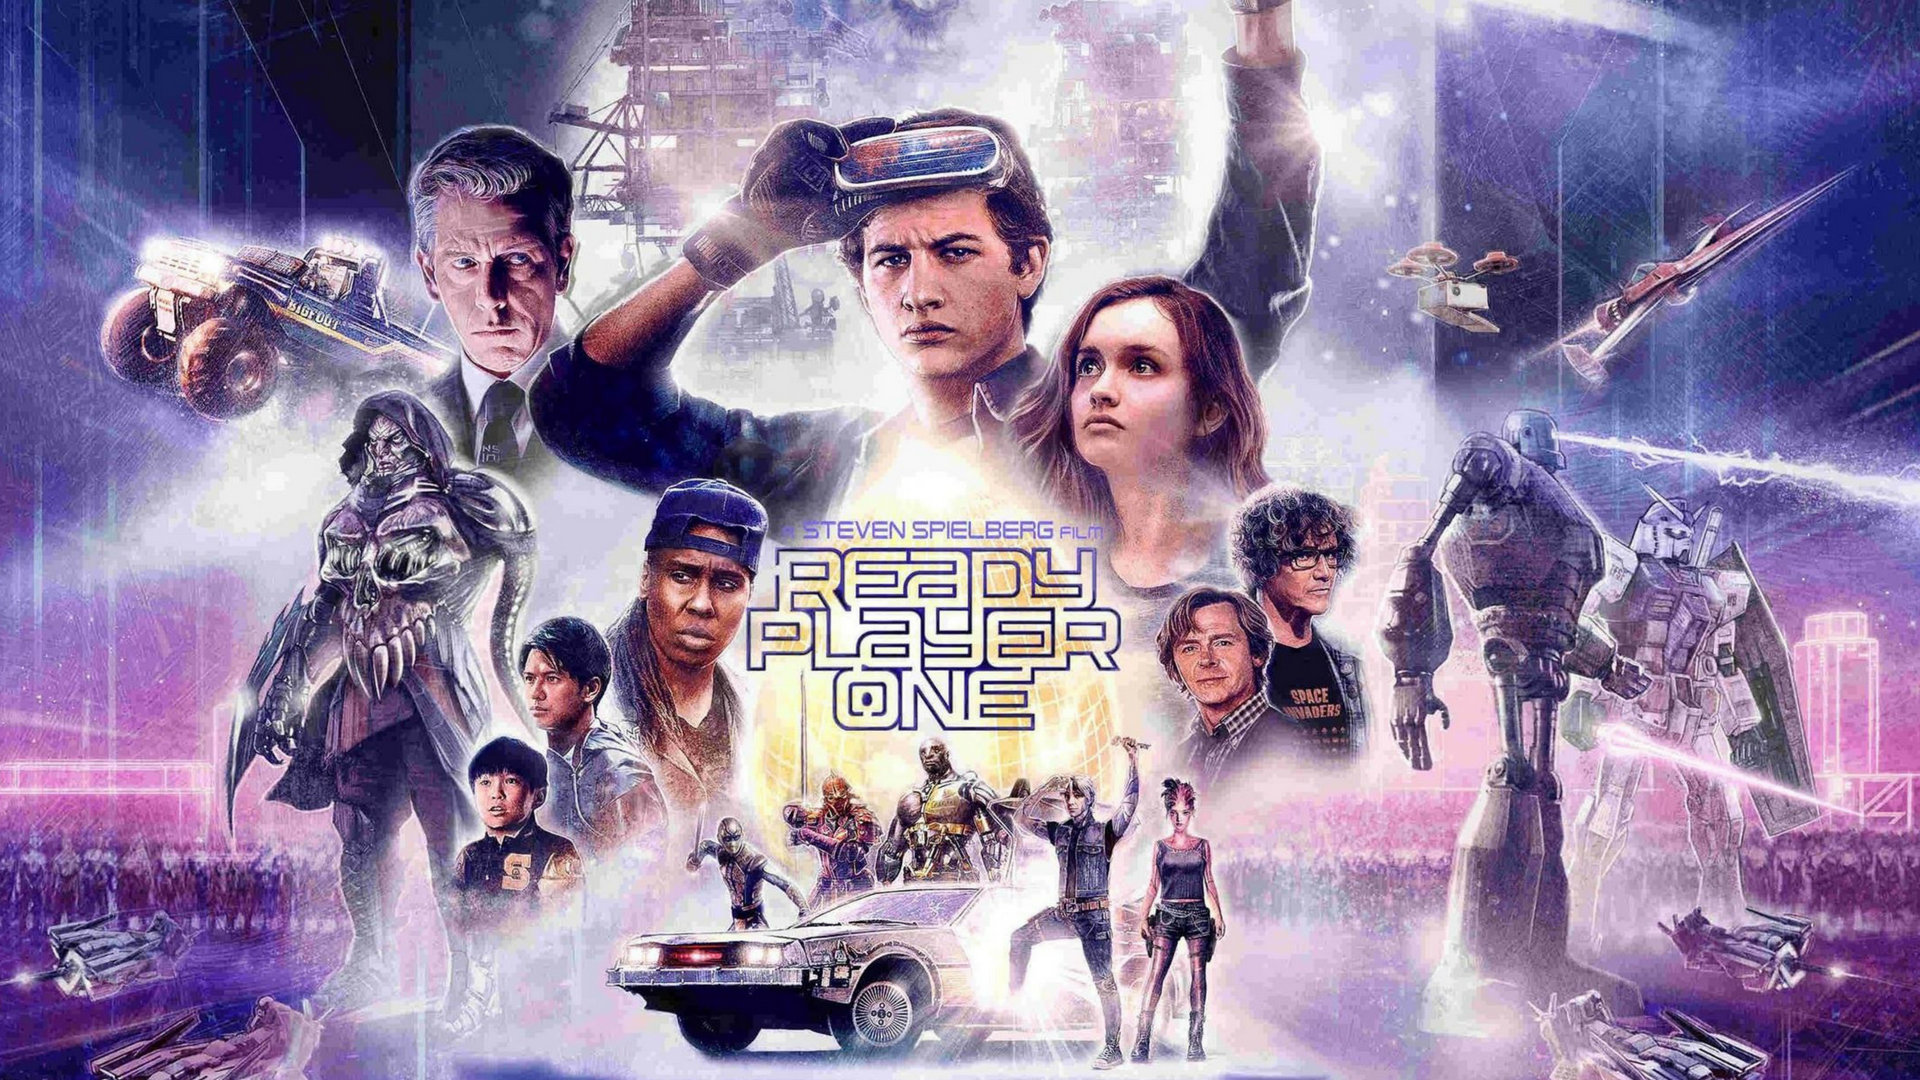 Ready Player One Movie Image